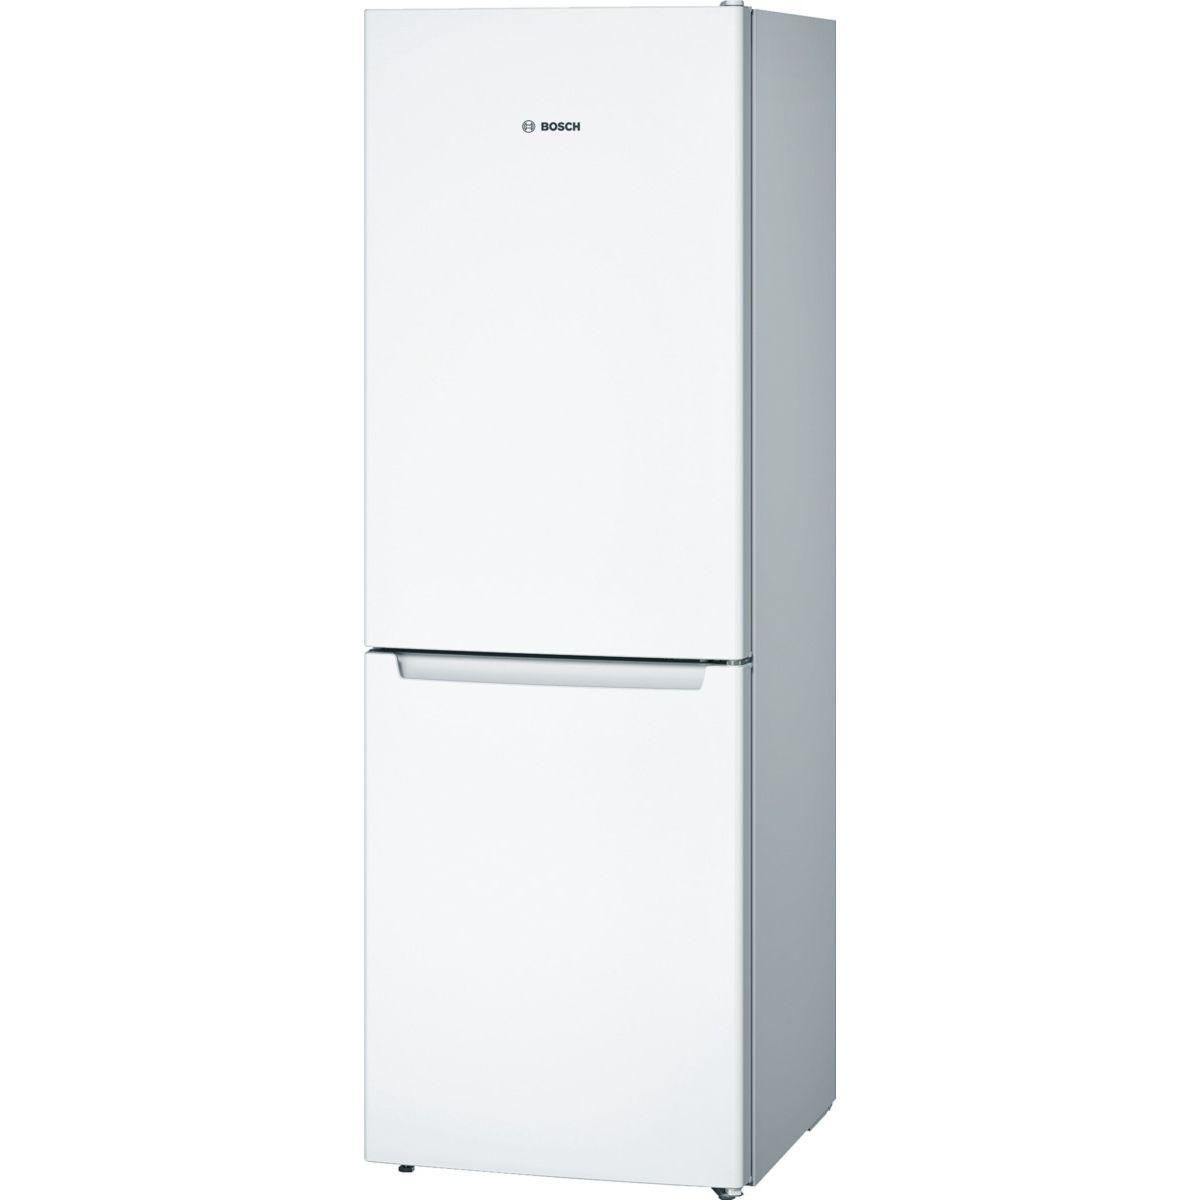 No Frost Bosch Kgn33nw20g Fridge Freezer A Energy Rating No Frost 60cm